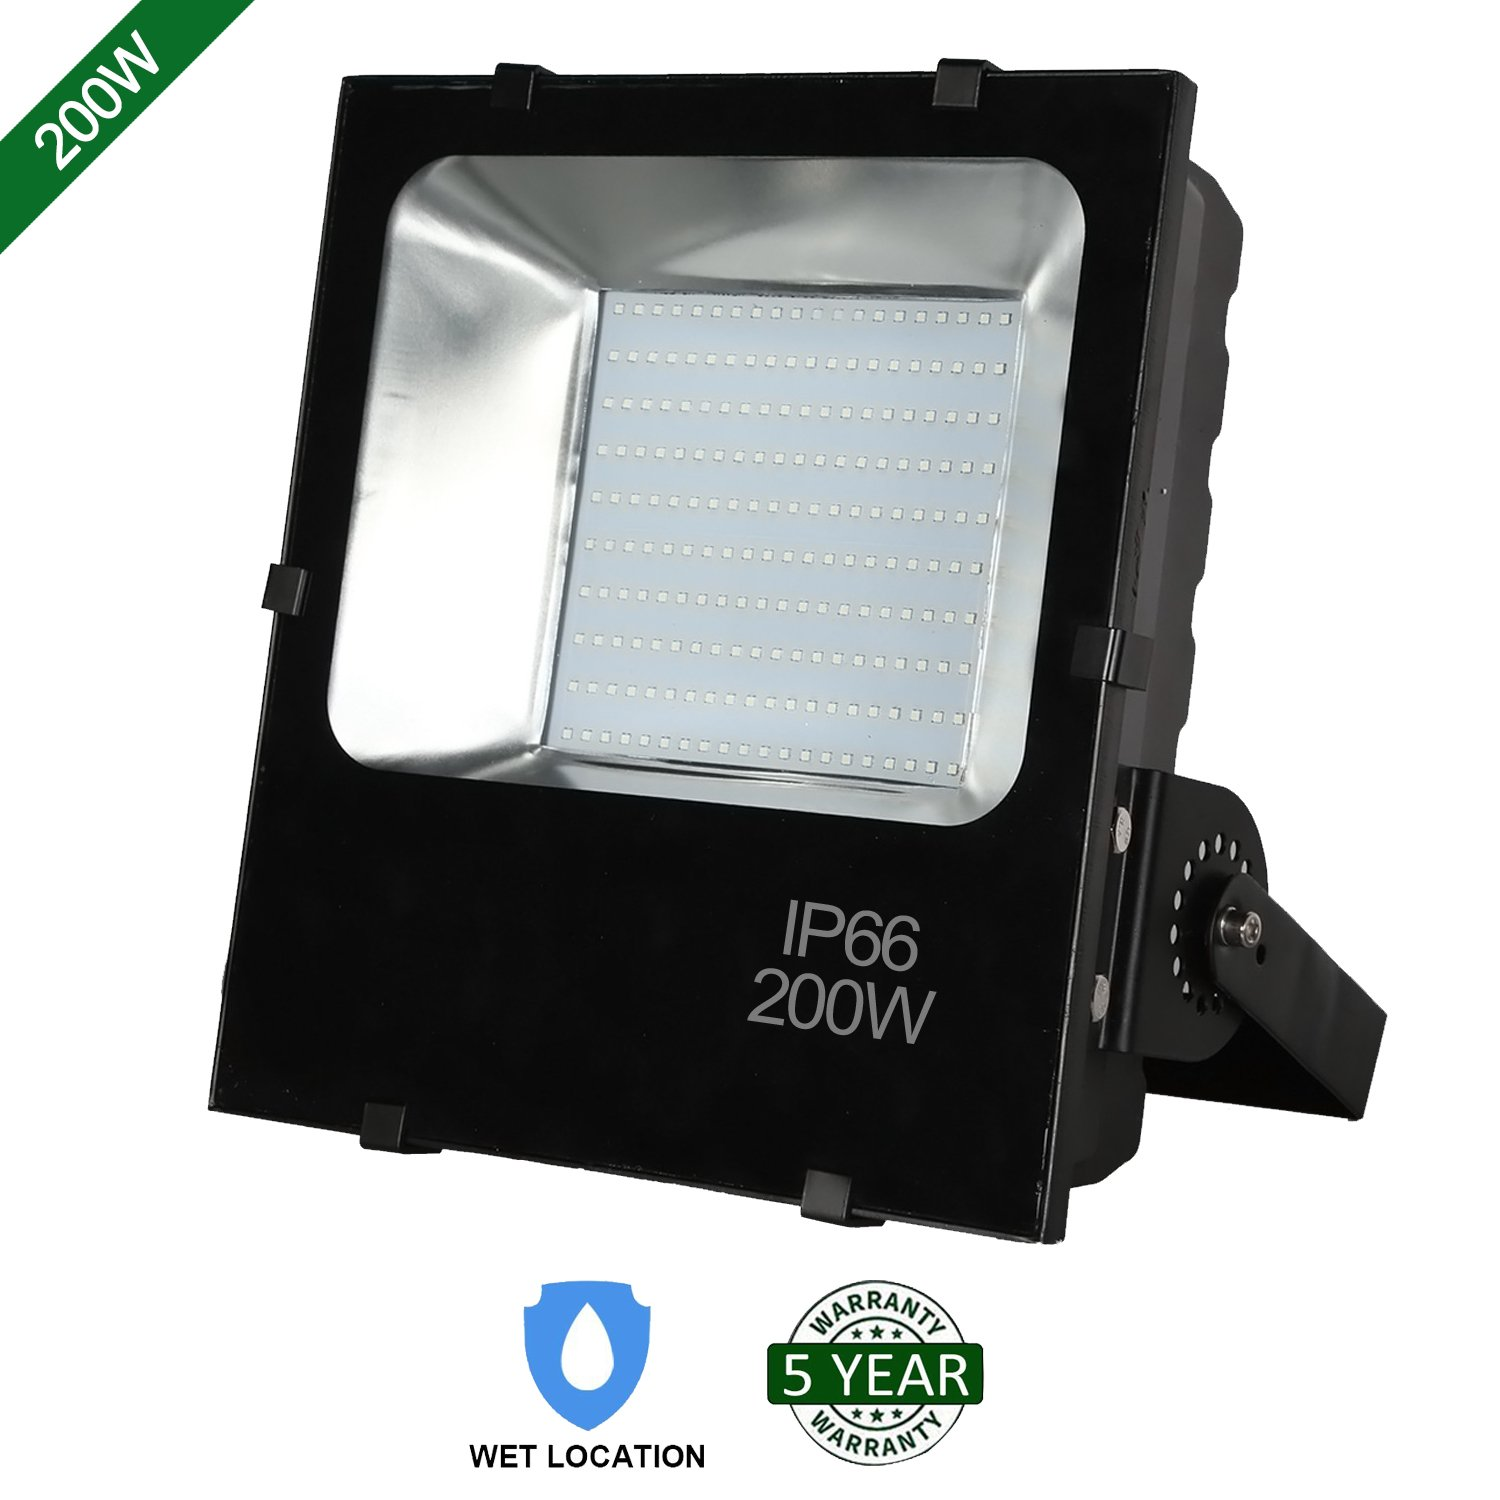 Hykolity 200W LED Flood Light Outdoor Security Light Weatherproof Parking Lot Warehouse Perimeter Lighting Fixture [1000W Equivalent] High Power 20000lm 5000k Residential/Commercial Use